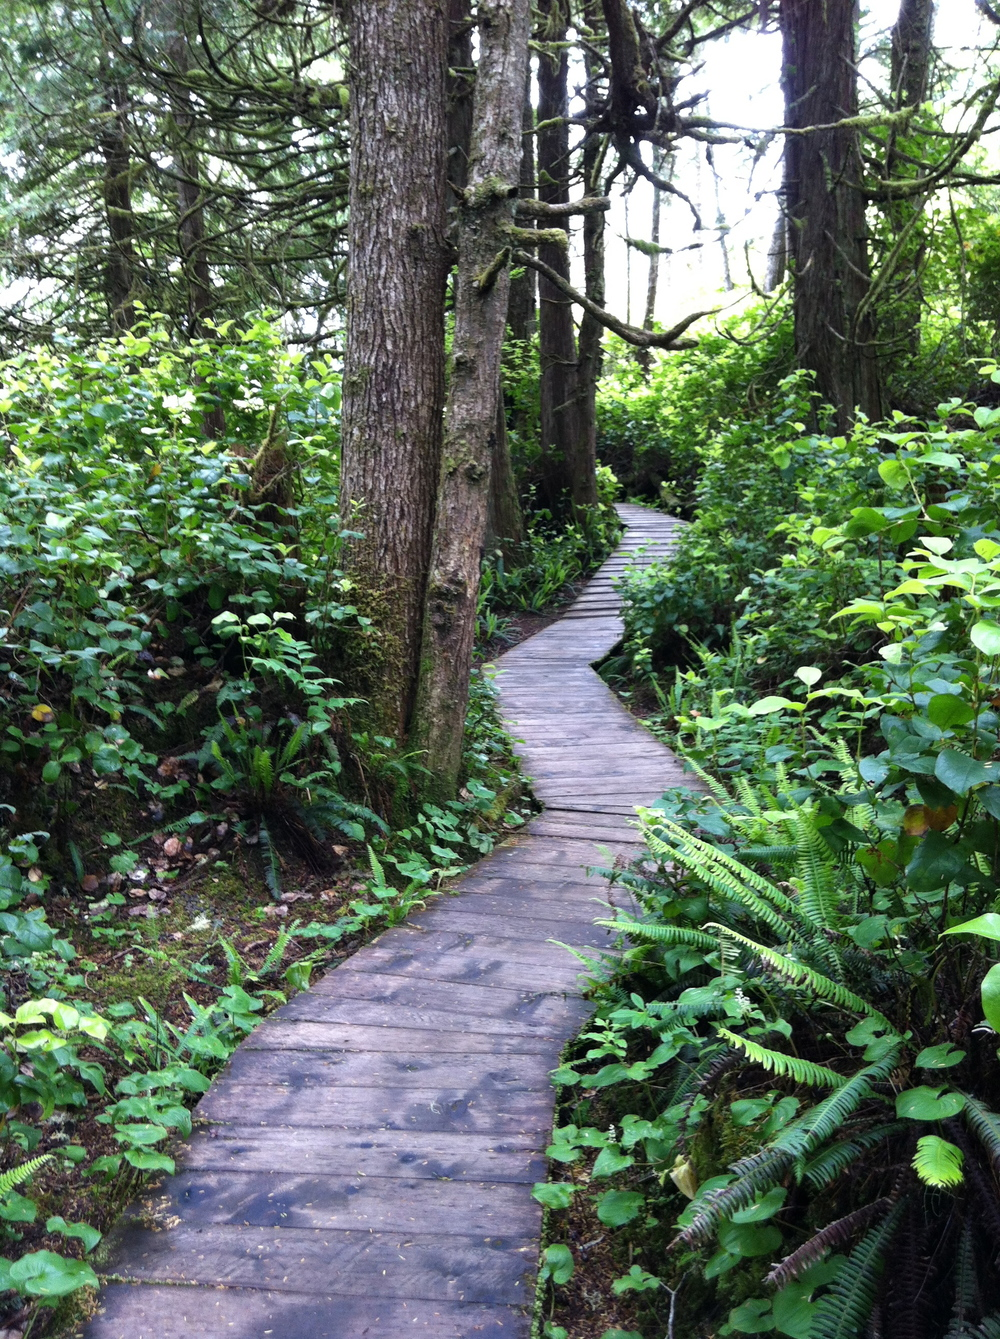 Boardwalk through the rainforest at Pacific Sands Resort on Cox Bay near Tofino BC